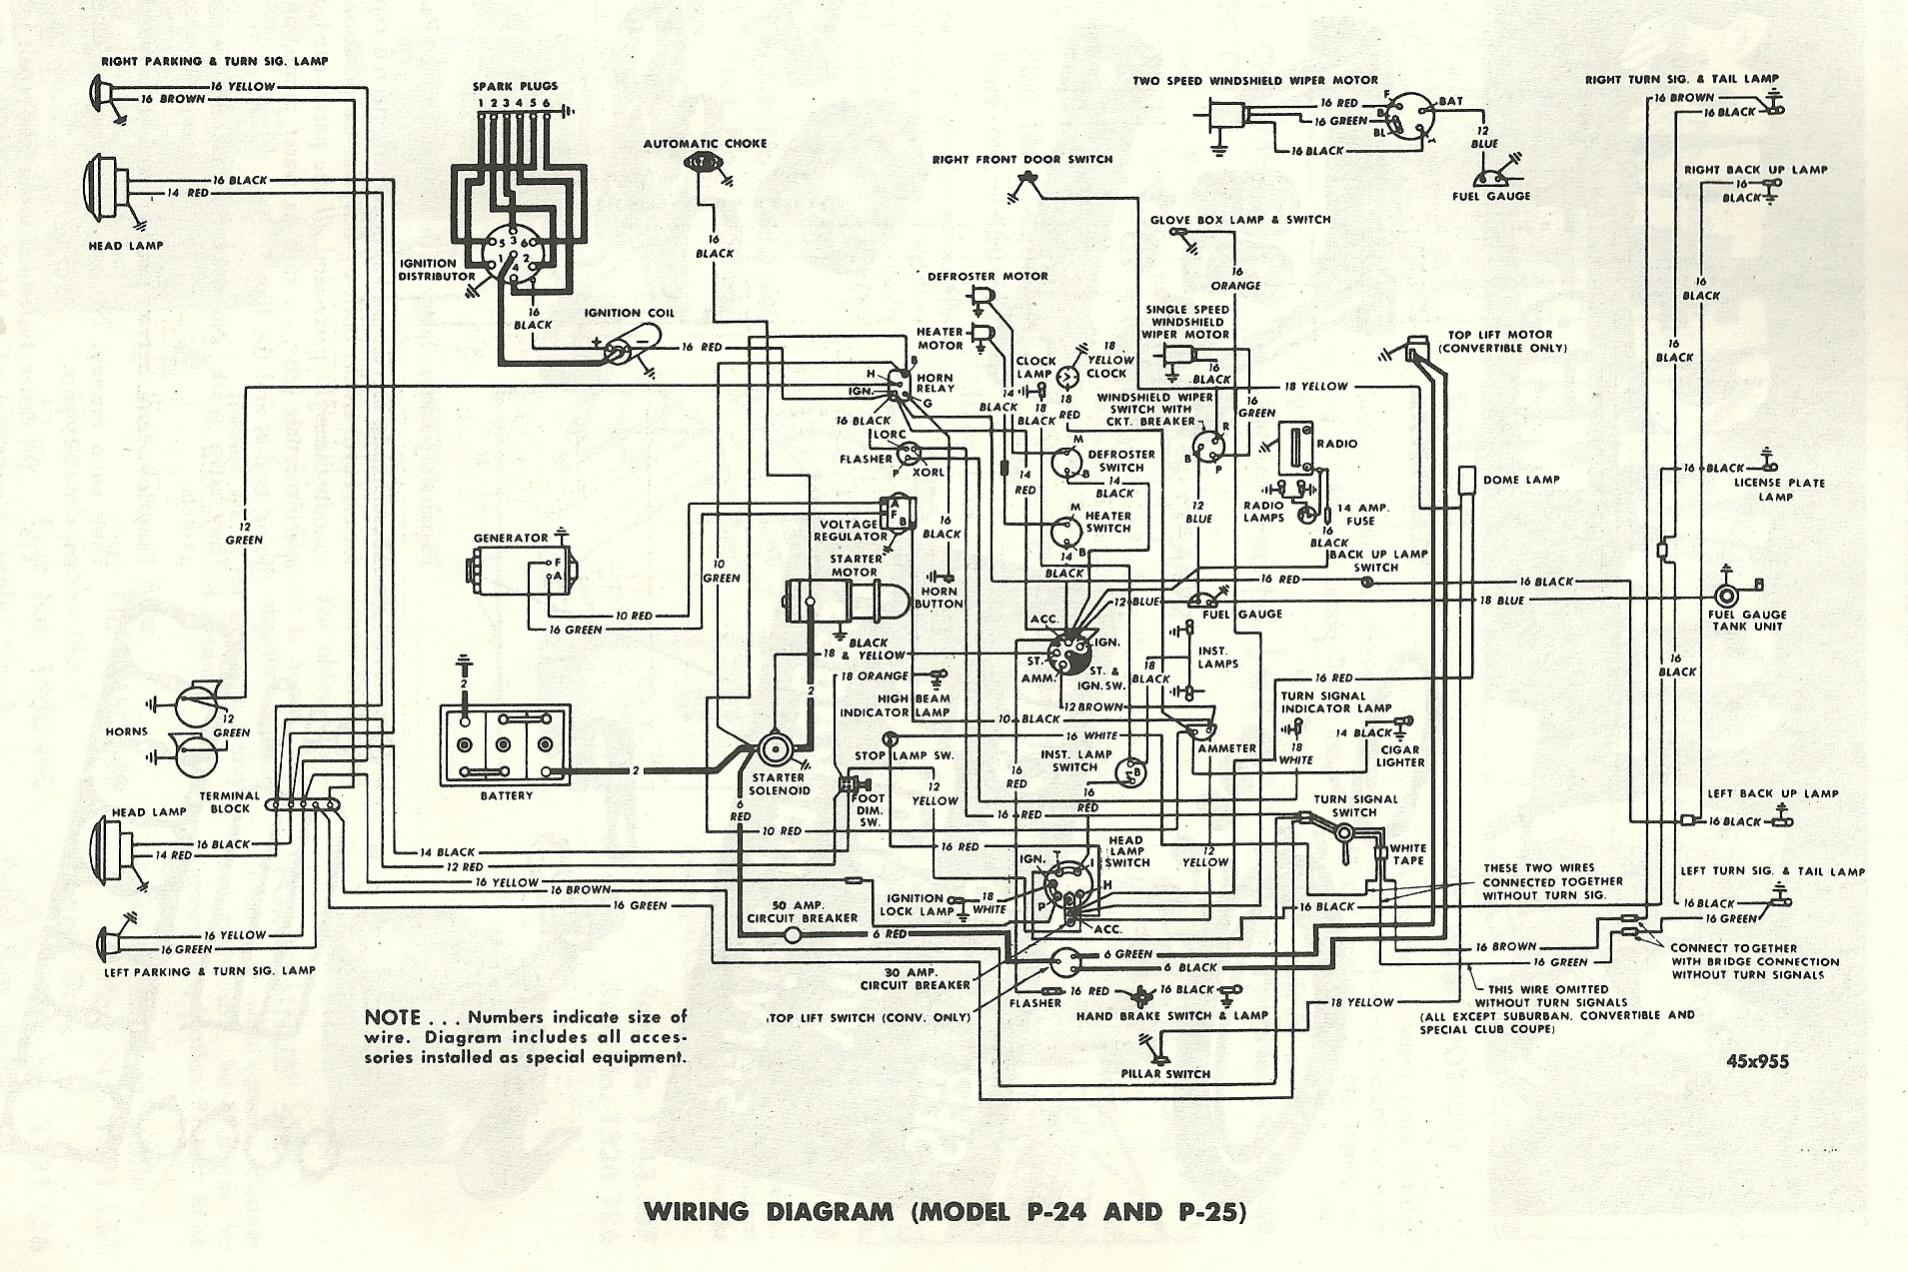 Plymouth Lights Wiring Diagram : Plymouth wiring diagrams diagram images